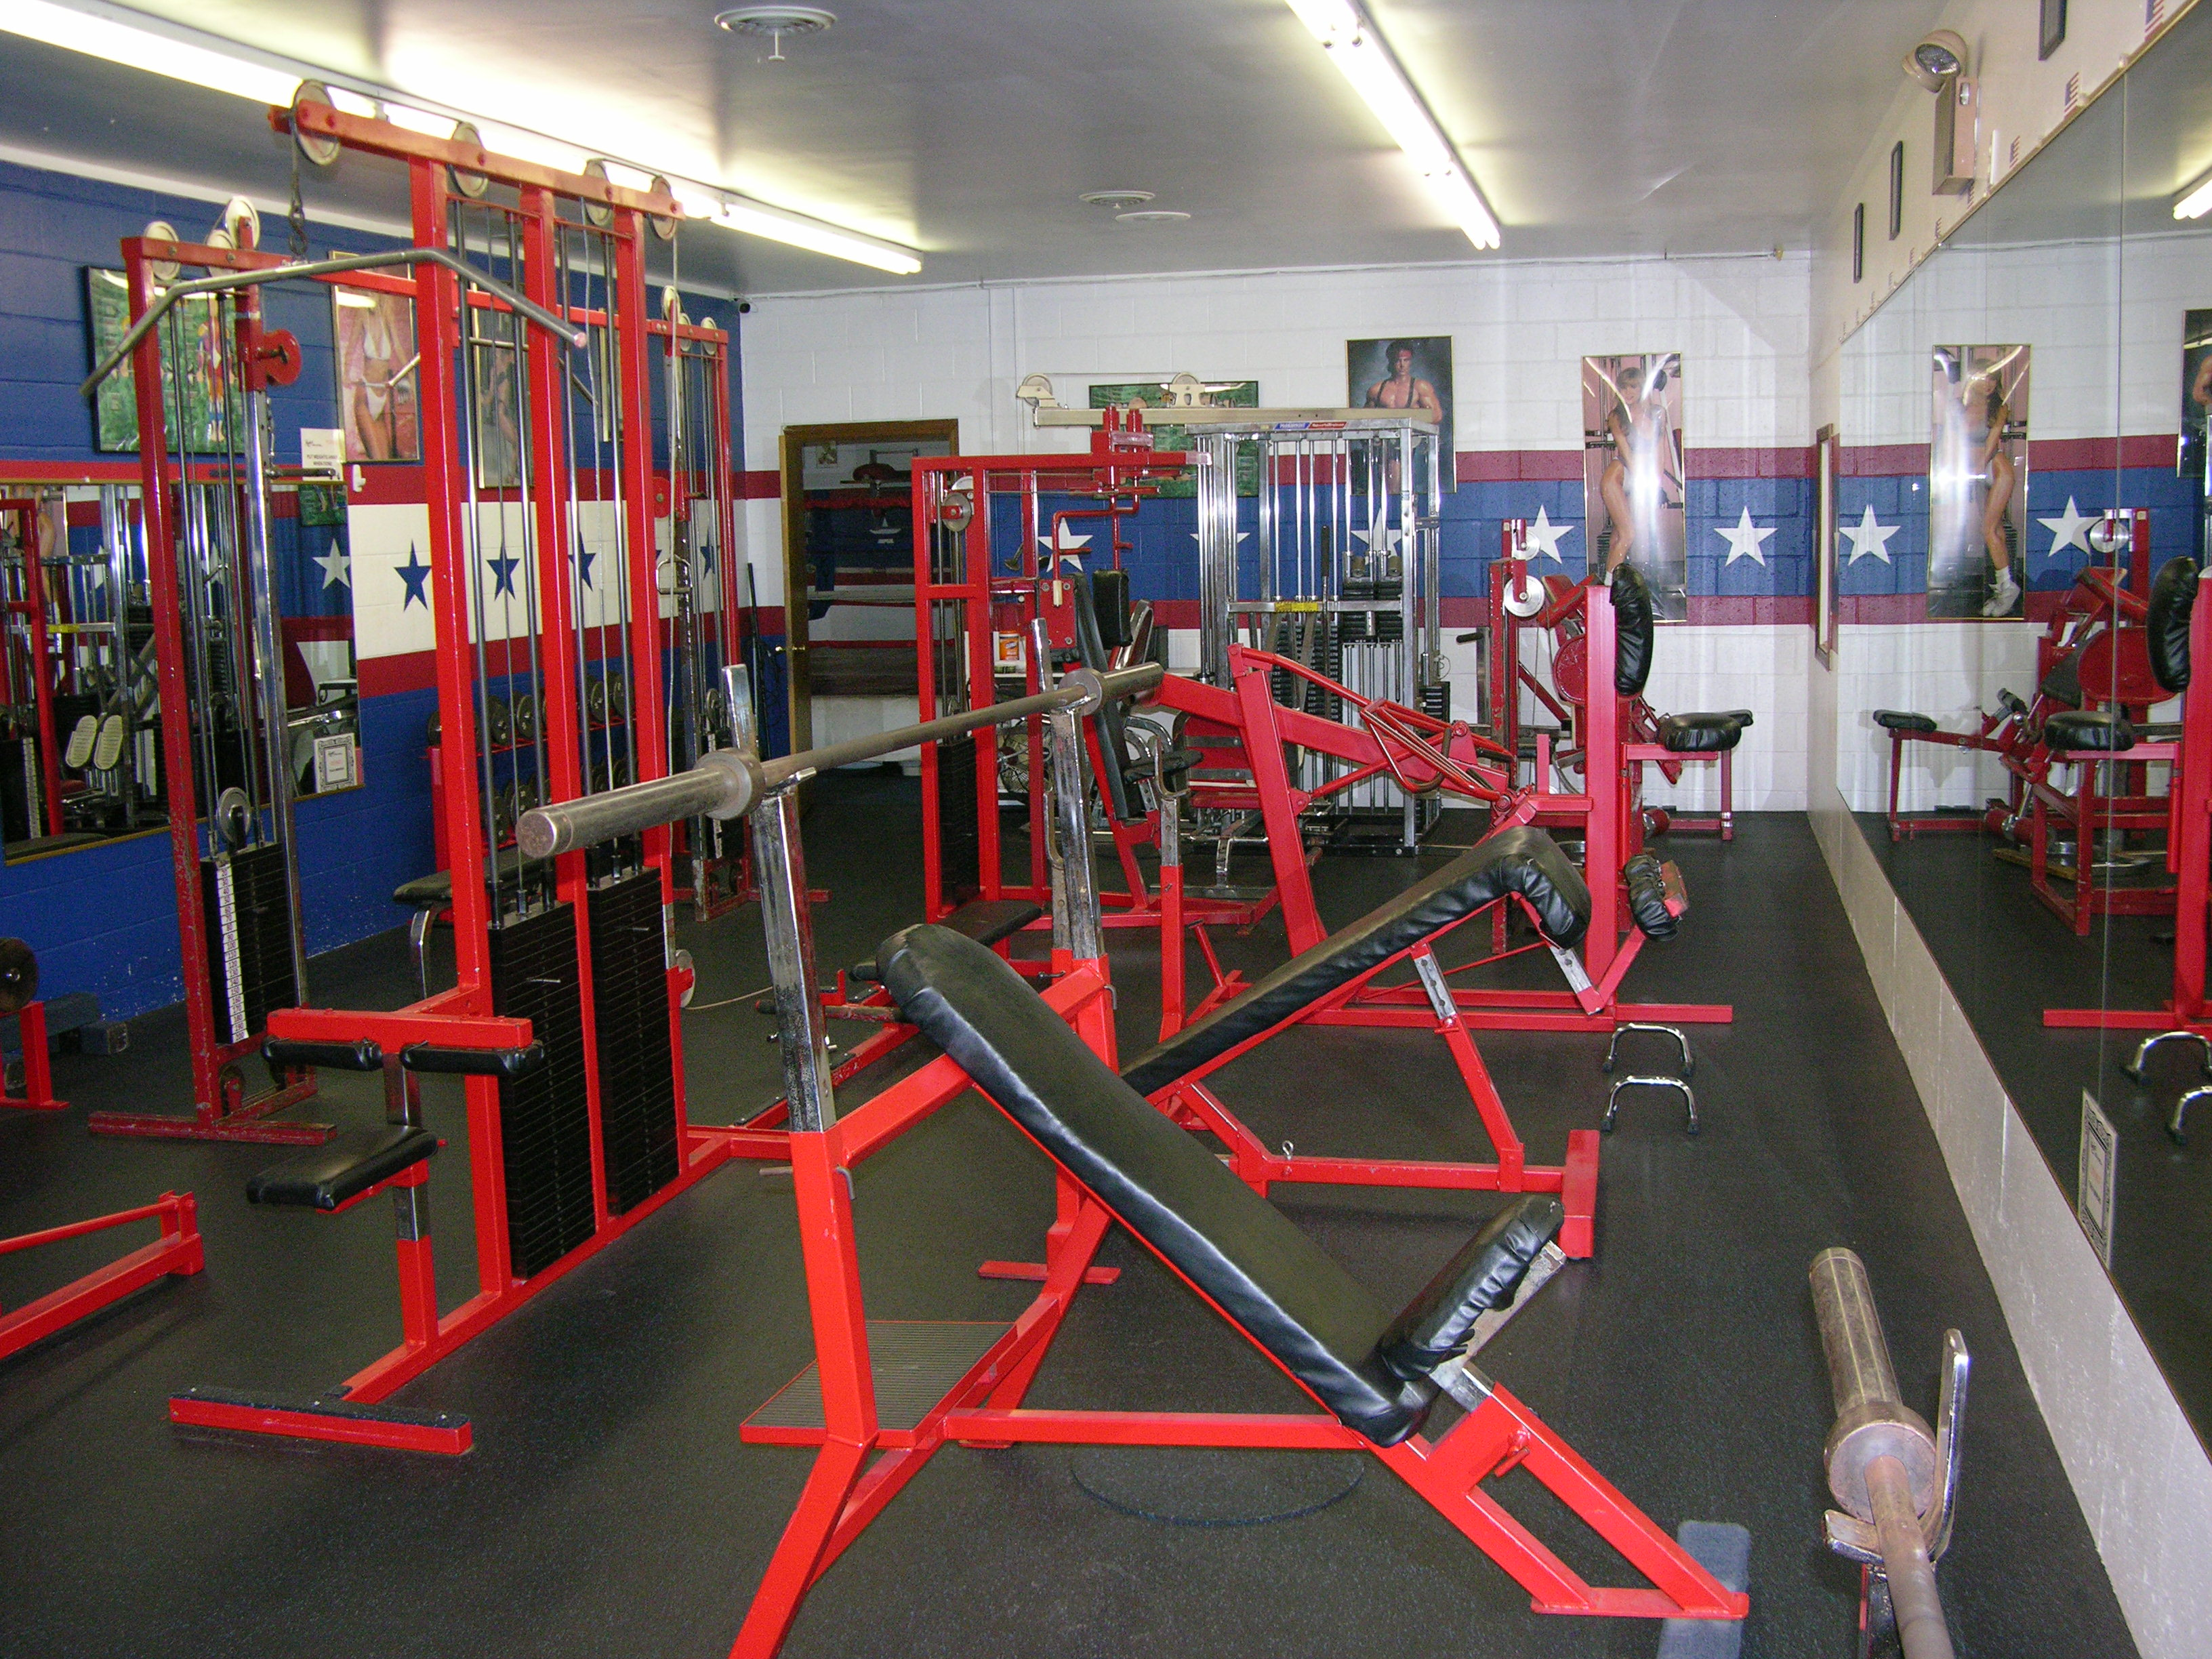 Fitness center weight room at rocky s dojo and gym sugar grove